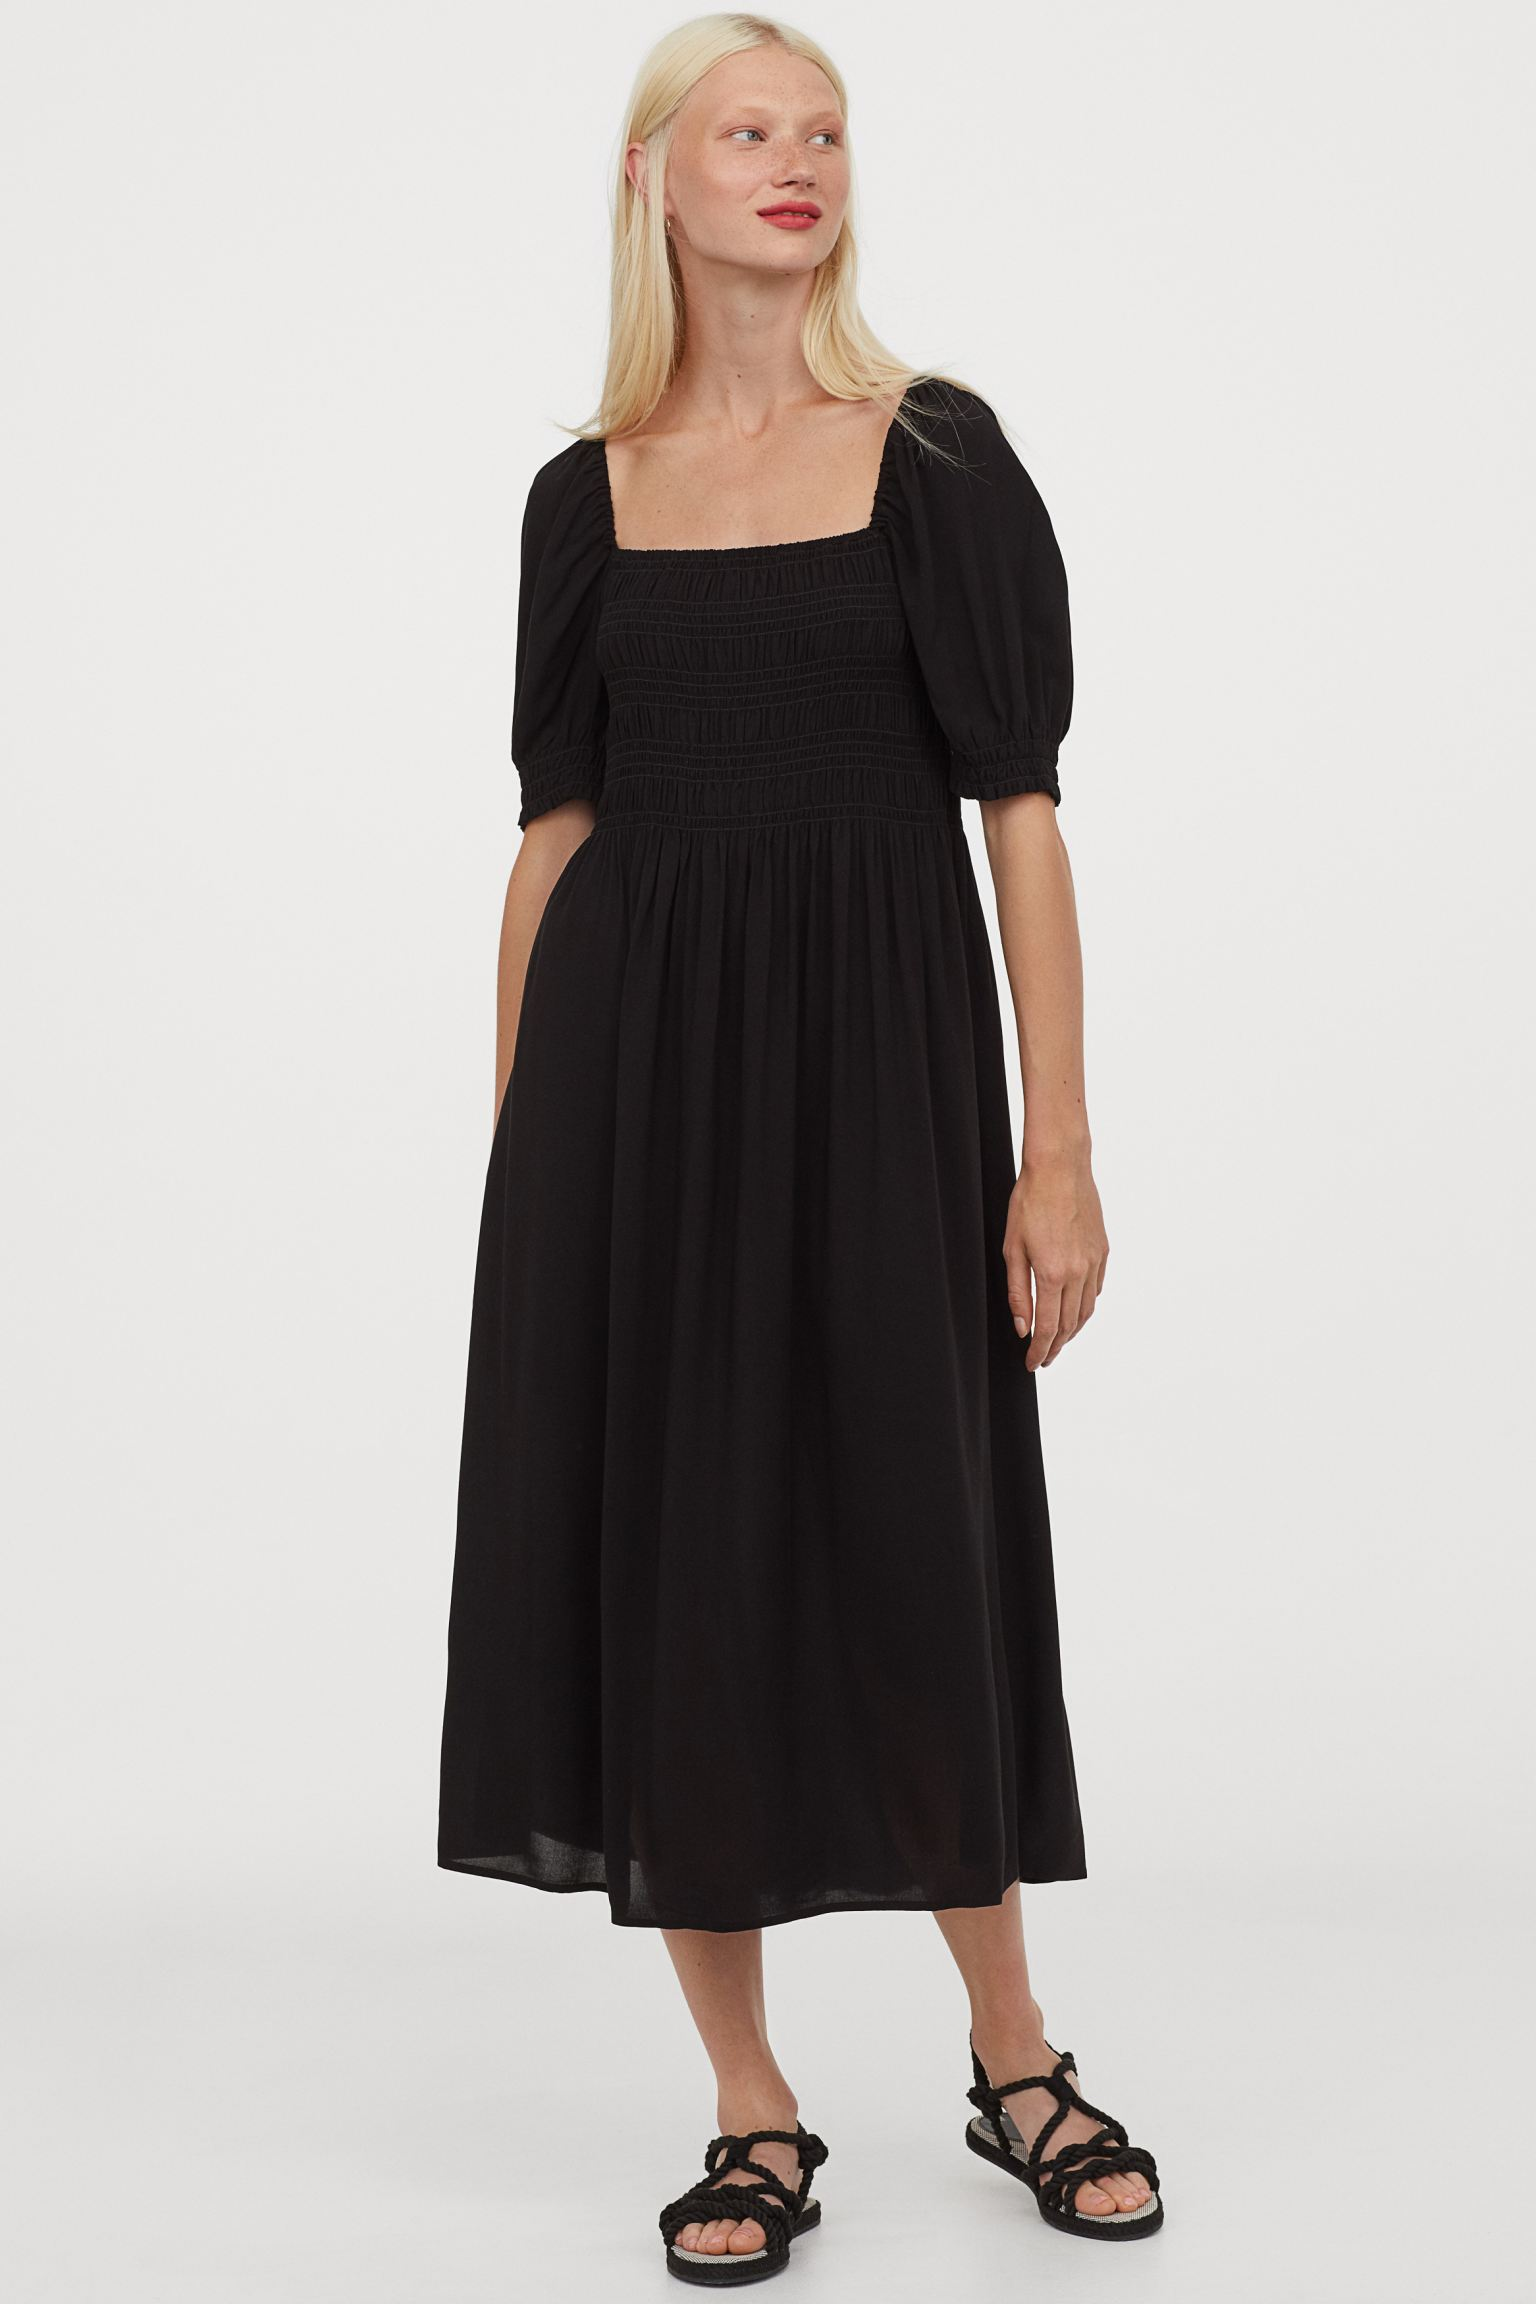 H&M Puff-Sleeved Dress